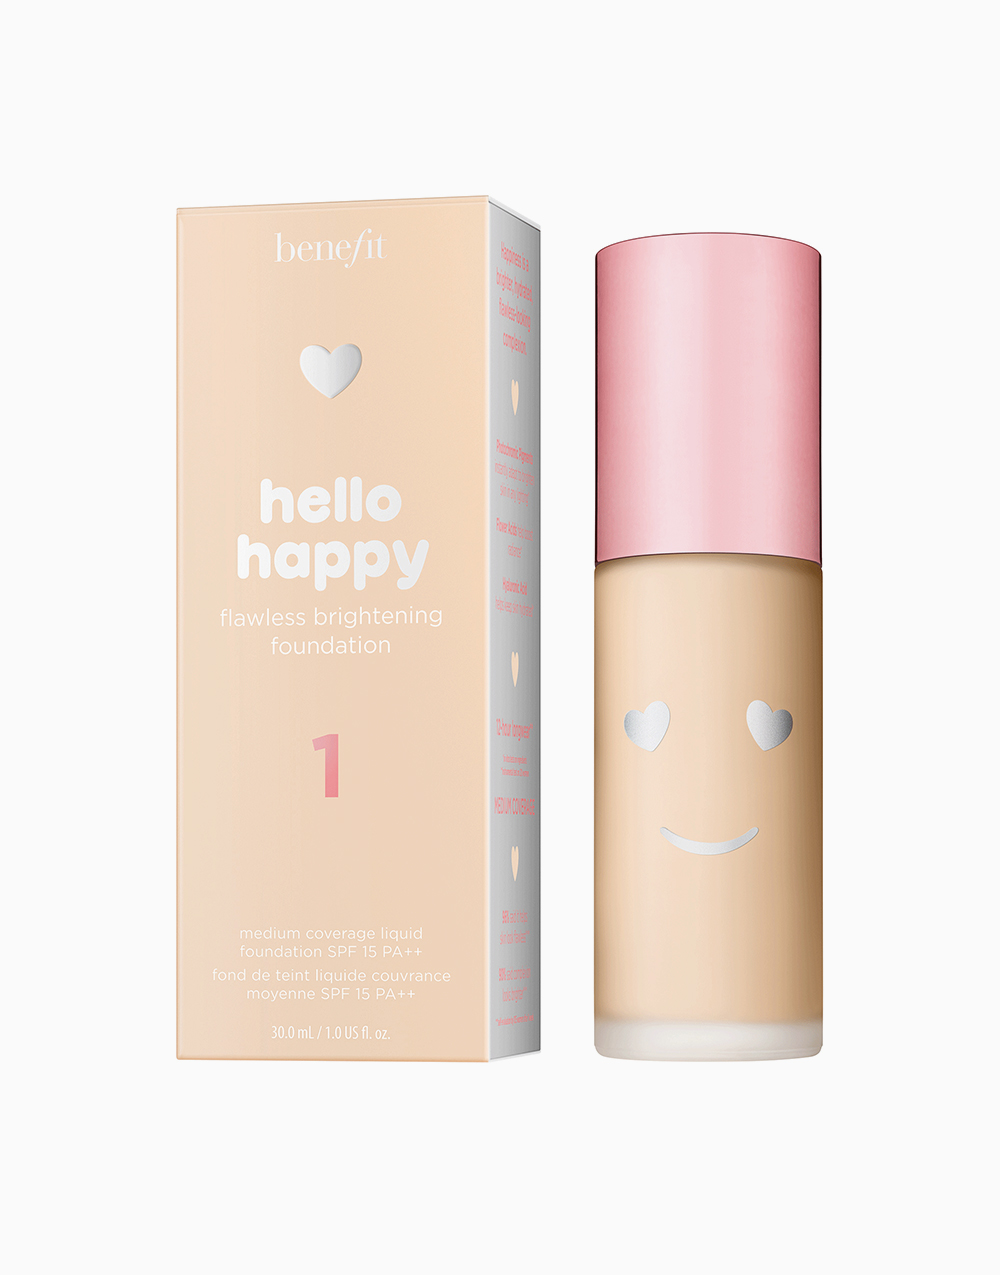 Hello Happy Flawless Liquid Foundation by Benefit | Shade 01